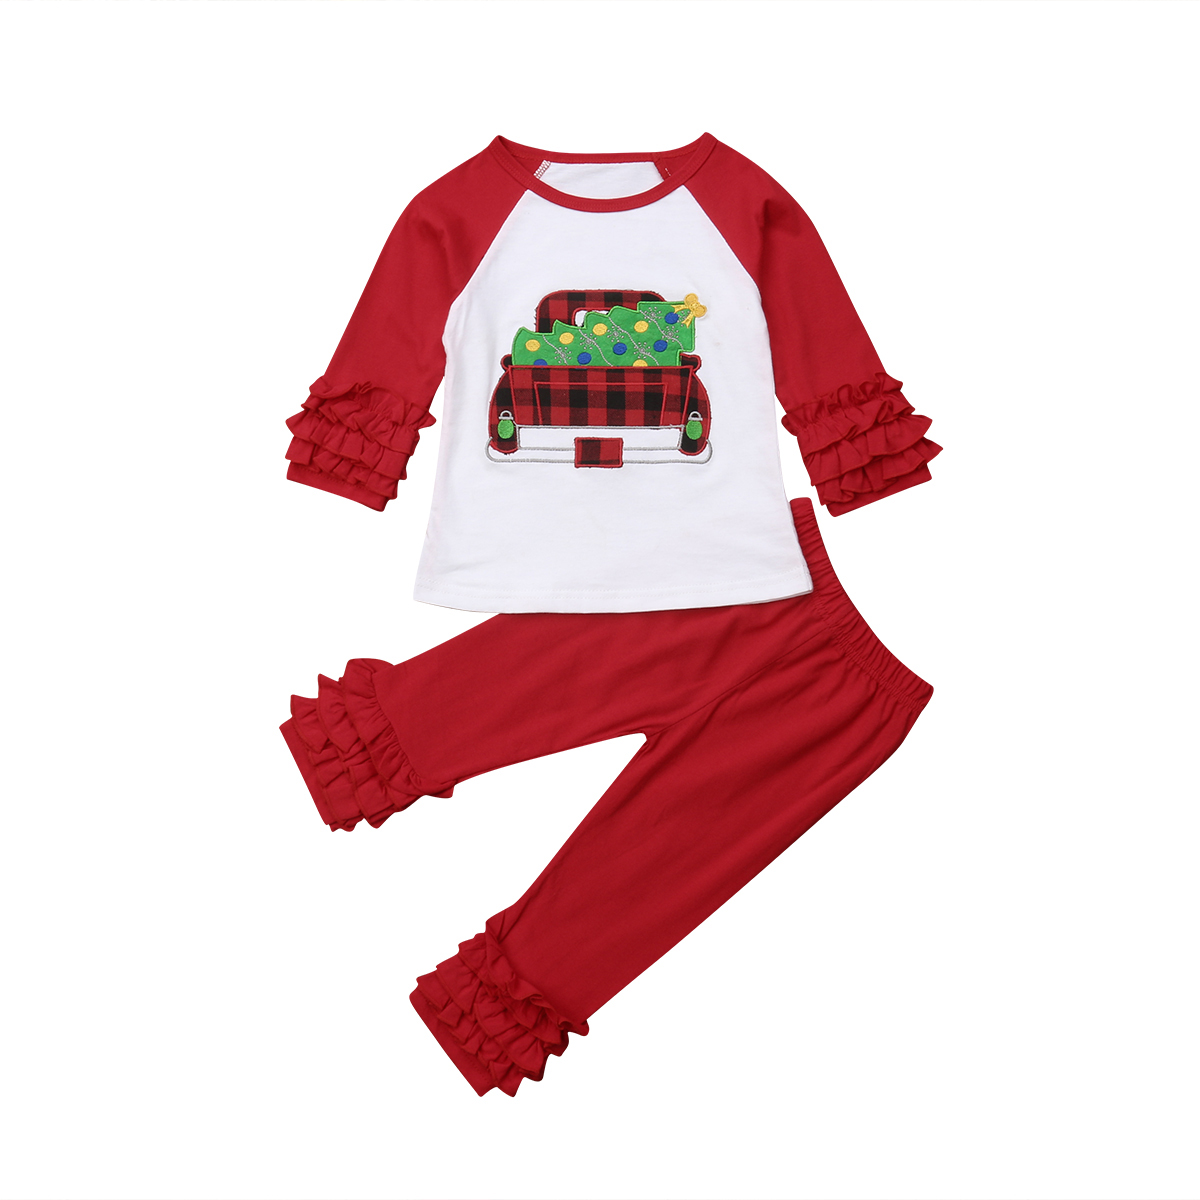 Christmas Kids Baby Girls Clothing Tops Cotton T-shirt Long Sleeve Ruffle Pants Xmax Cotton 2PCS Outfit Clothes Set Girl 0-6T платье женское bezko платье женское